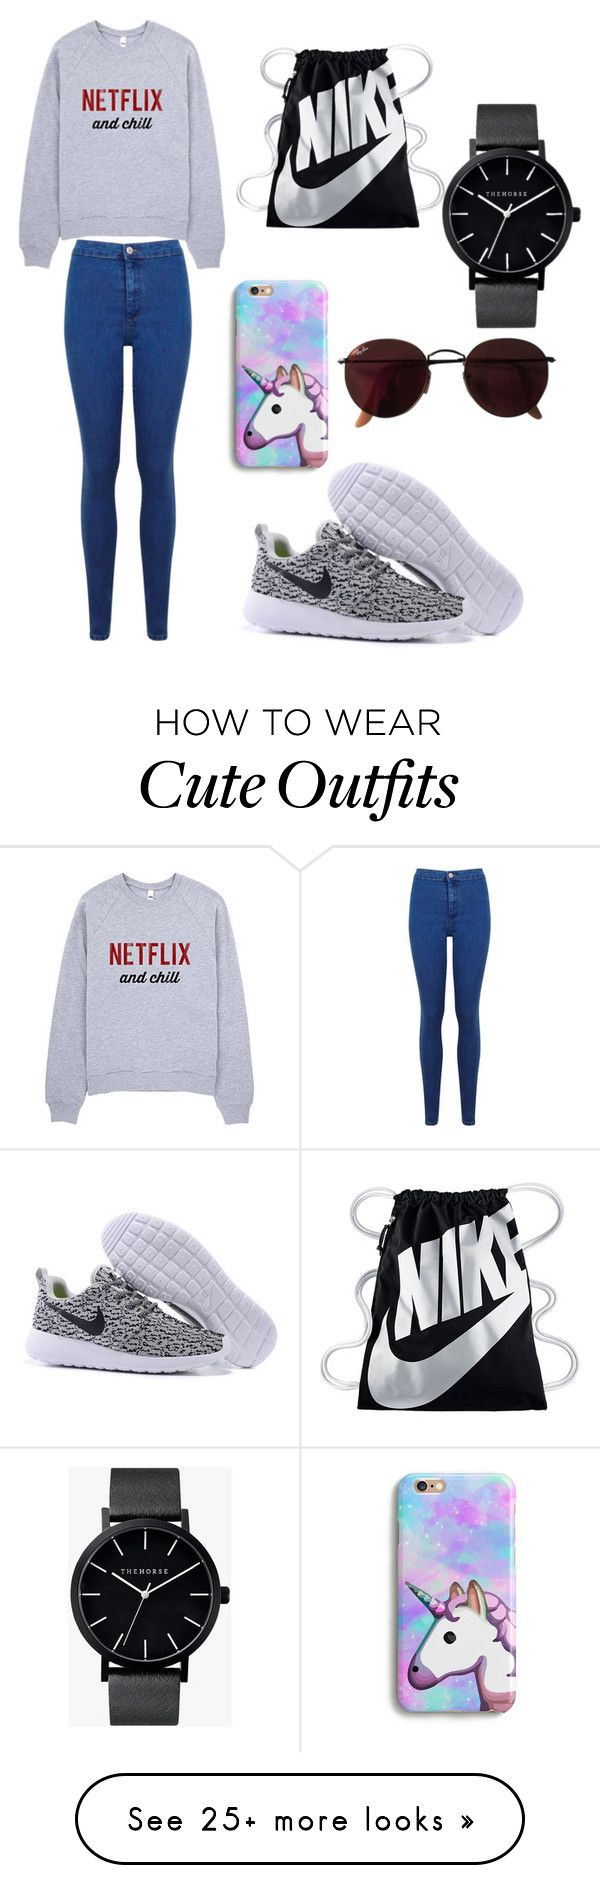 """""""My First Polyvore Outfit"""" by samsonovas on Polyvore featuring Miss Selfridge, NIKE, Ray-Ban and The Horse"""